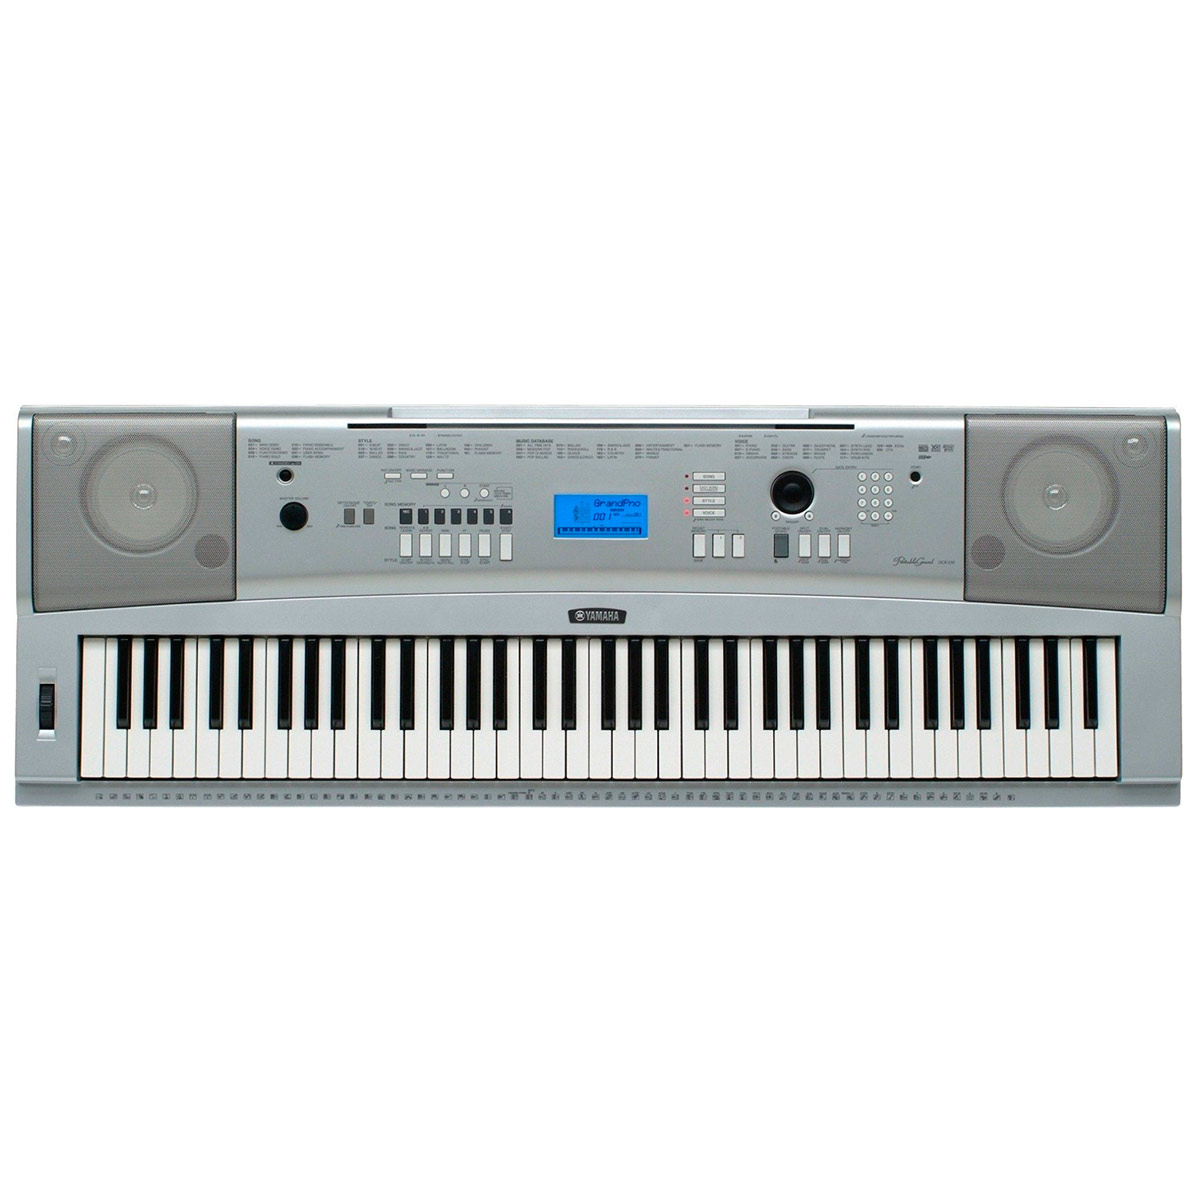 Piano Digital 76 Teclas - DGX 230 Yamaha